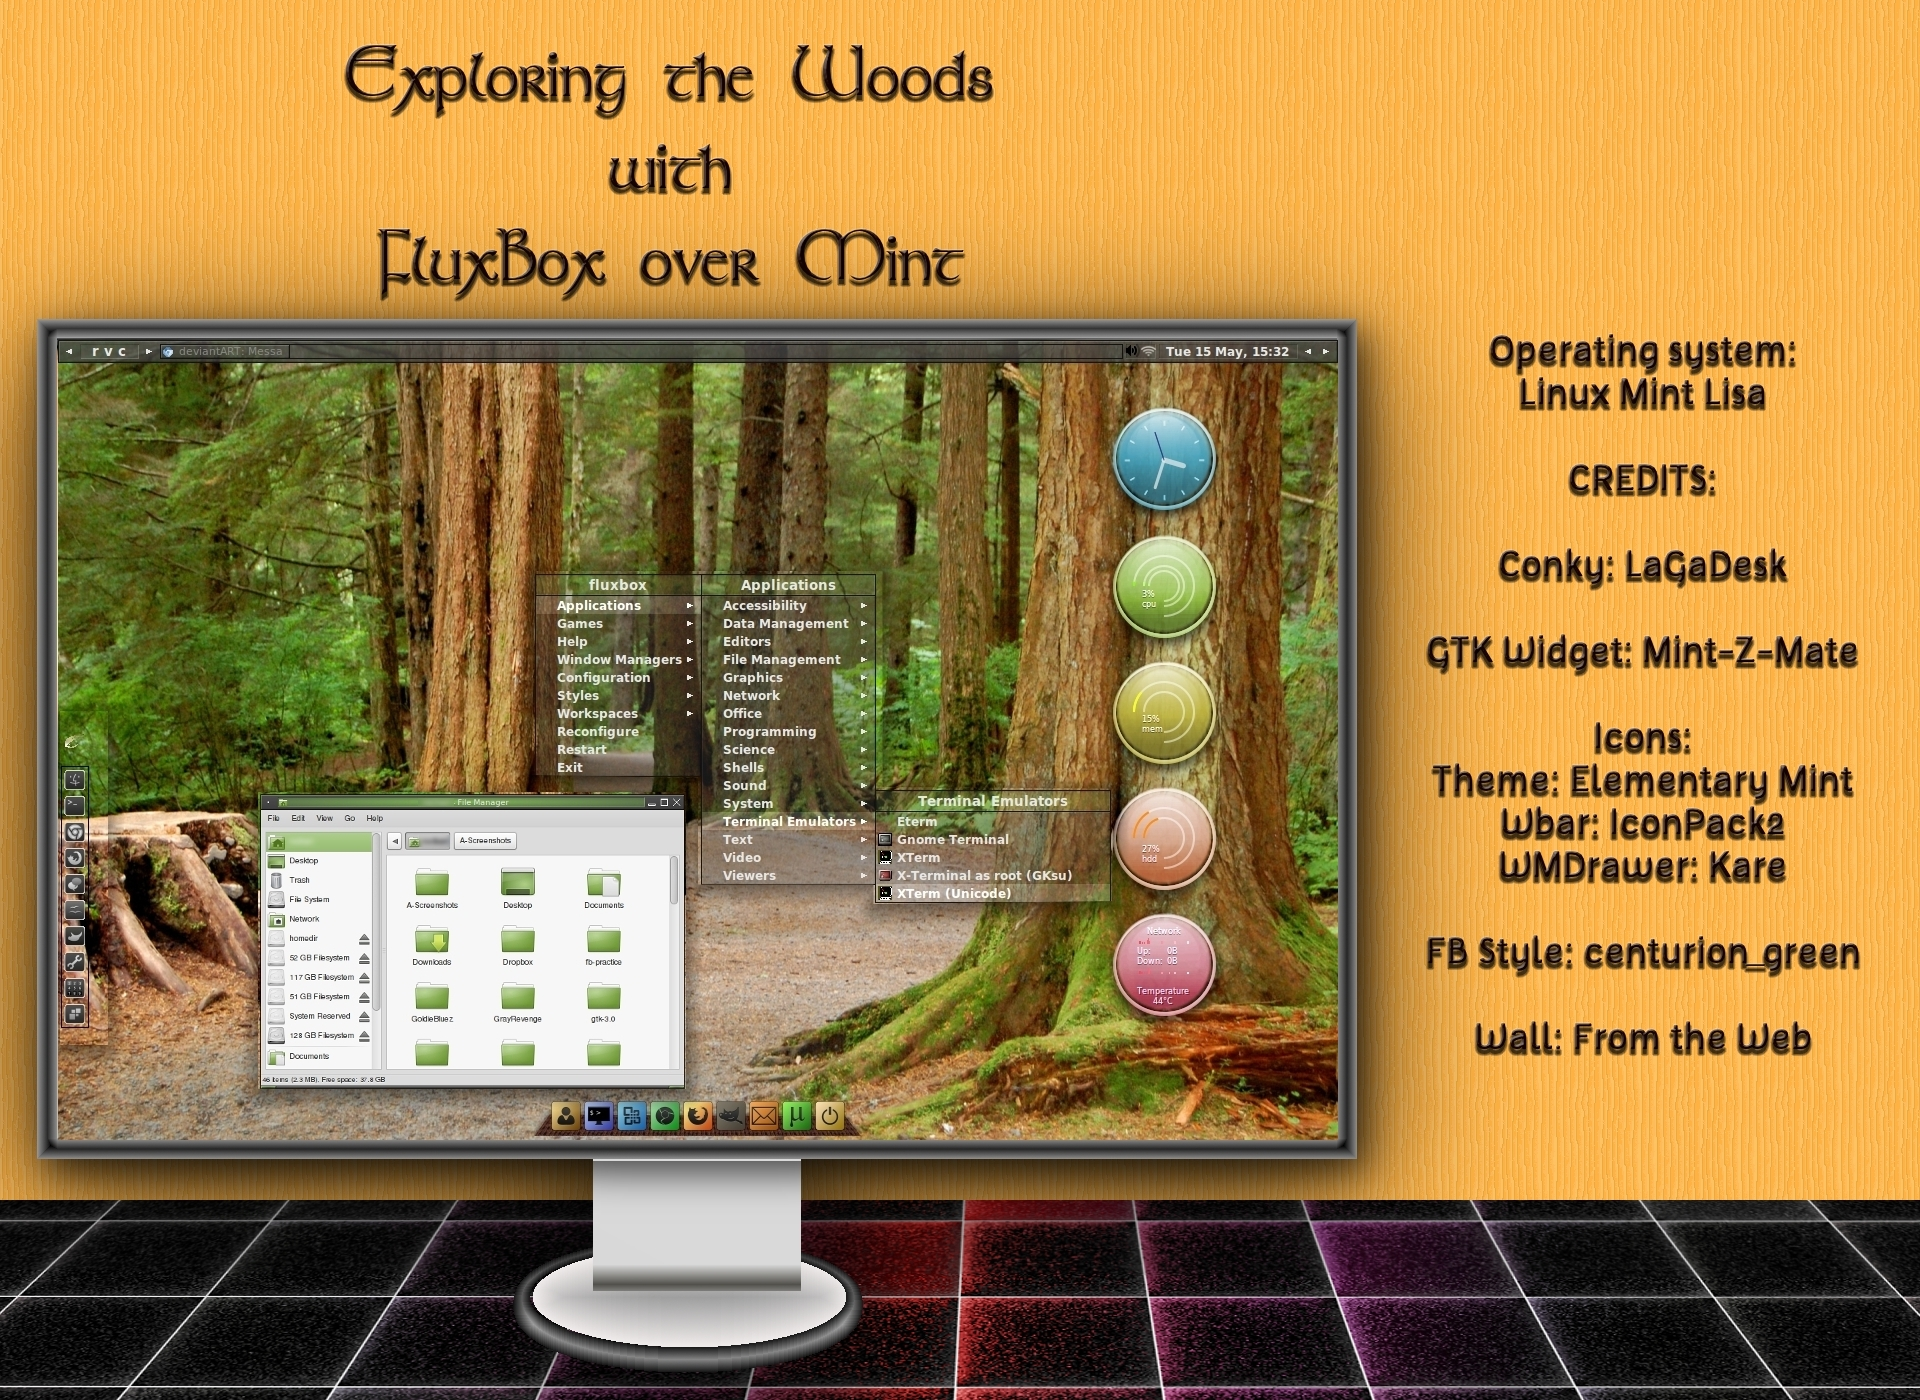 Exploring the Woods with Fluxbox over Mint by rvc-2011